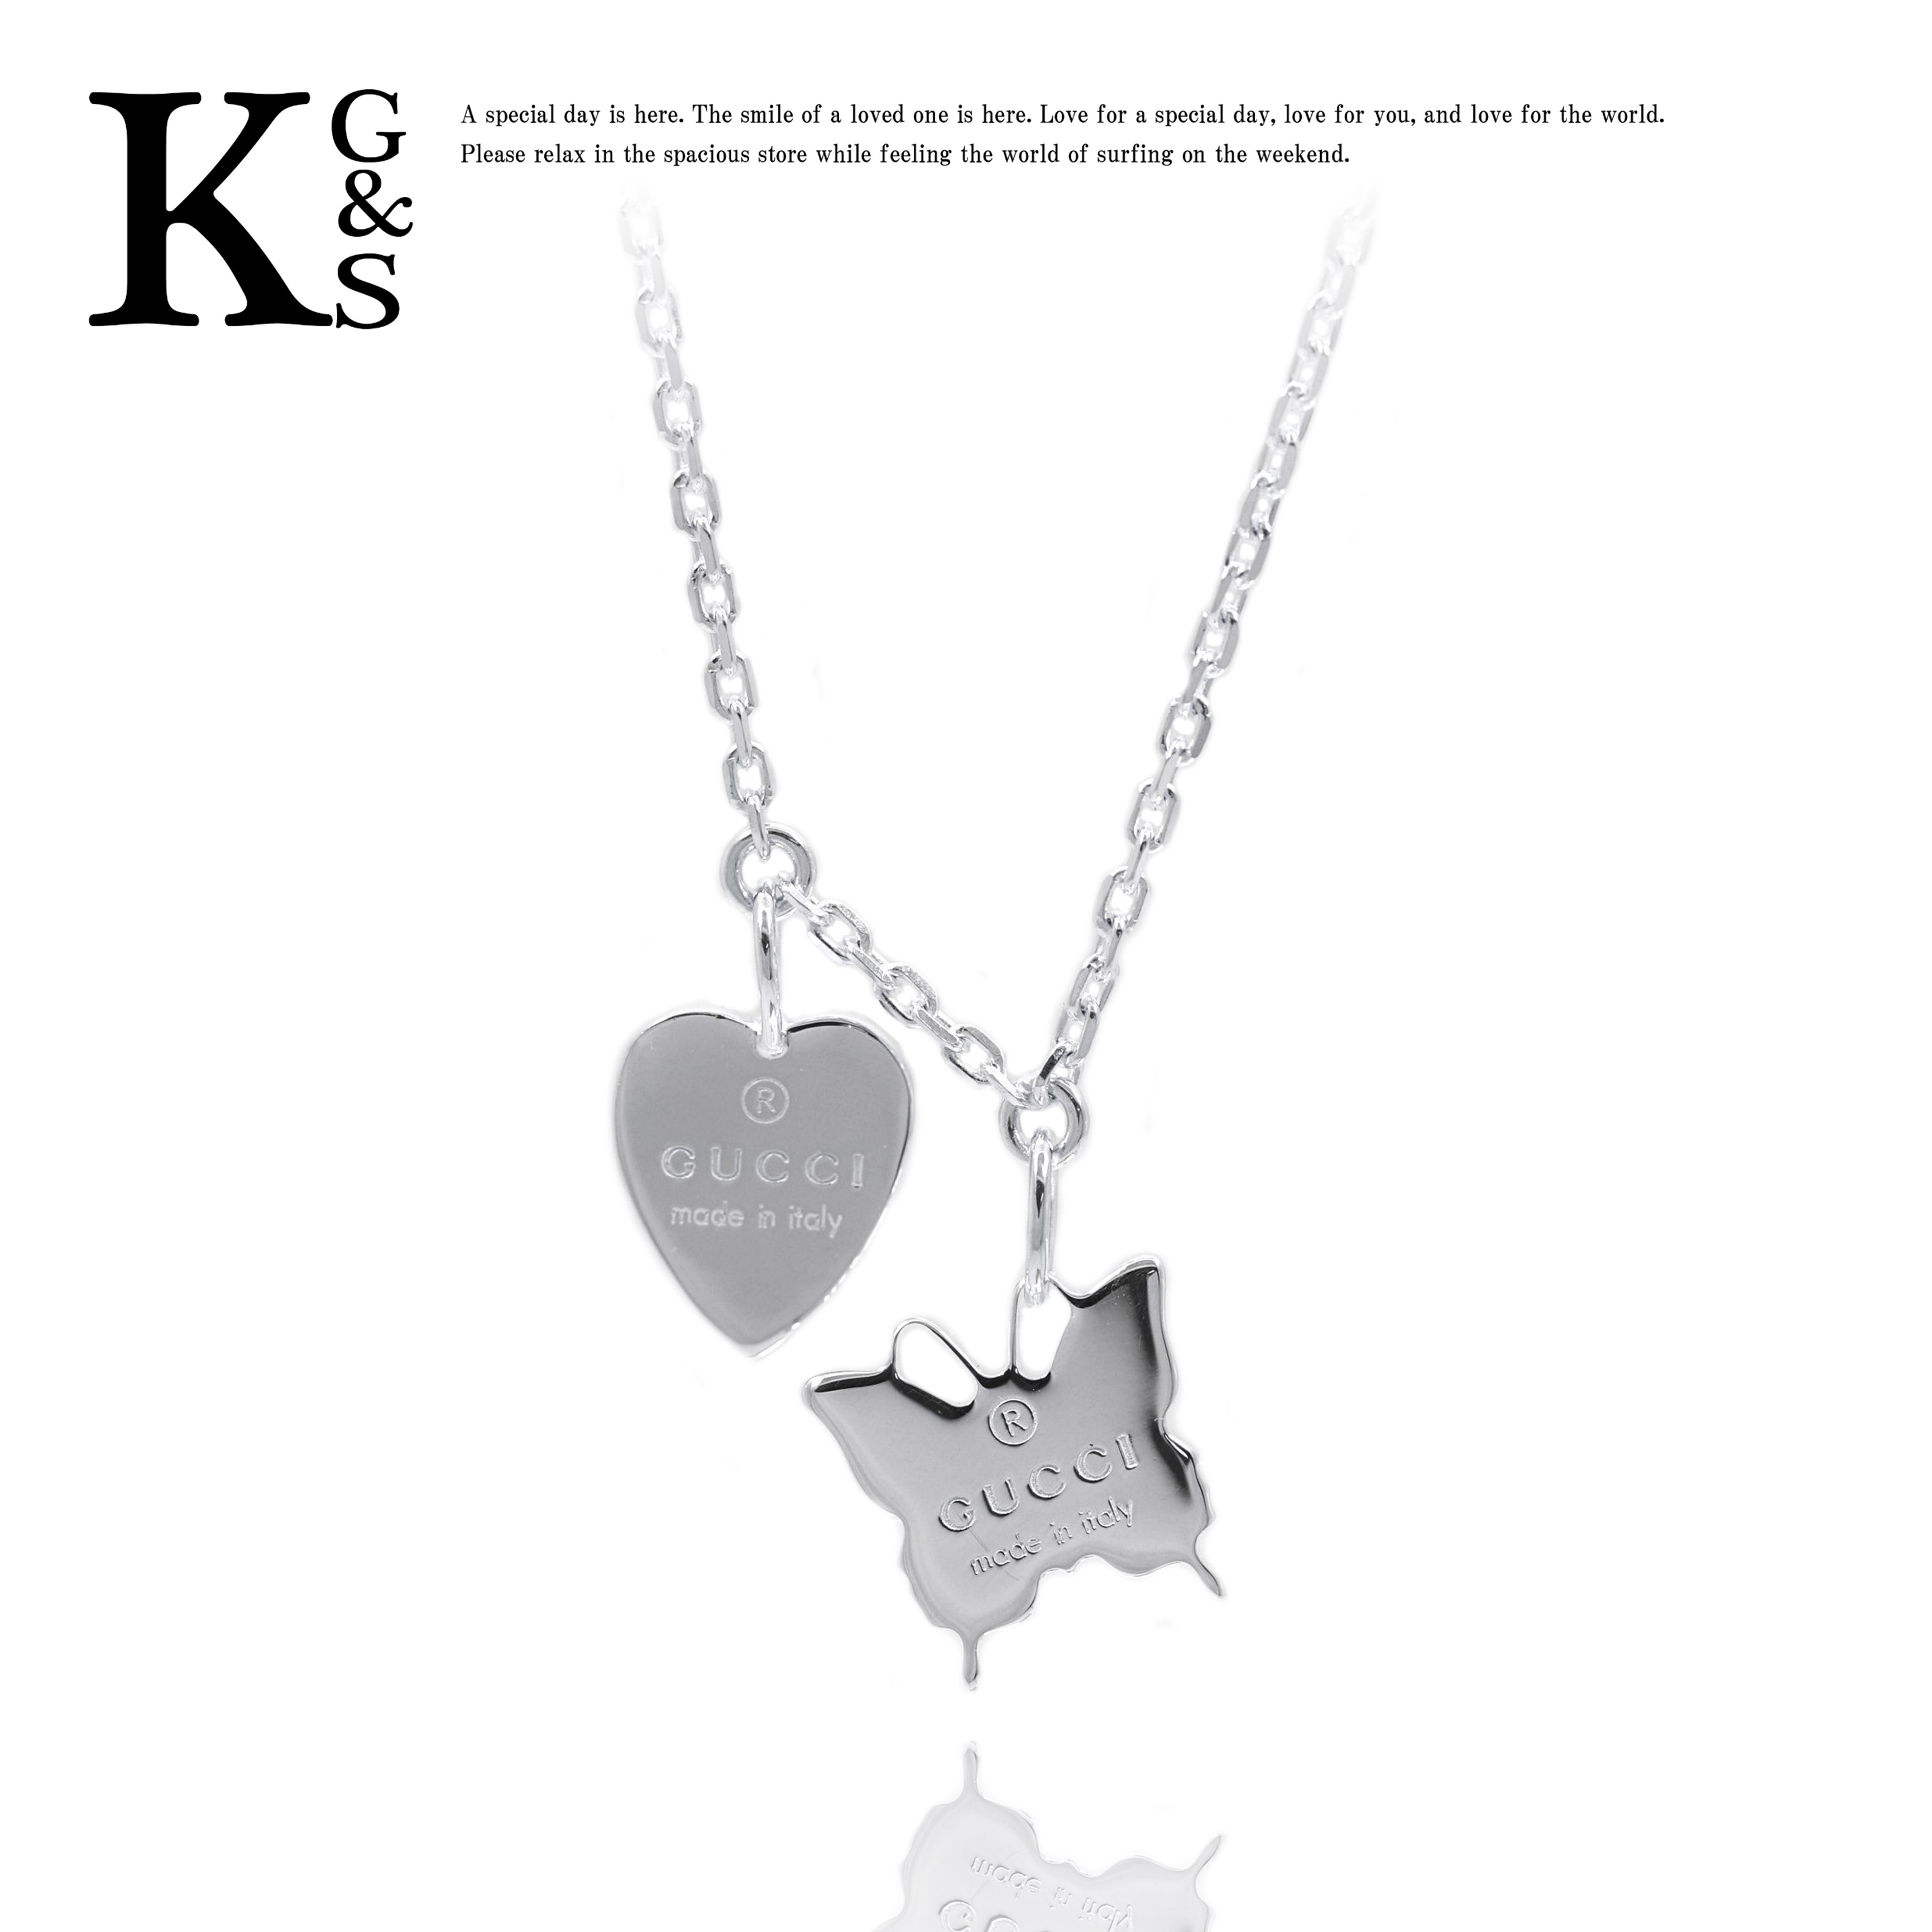 The Gucci /GUCCI / jewelry Lady\u0027s necklace / trademark butterfly \u0026 heart  motif pendant Ag925 223983 J8400 8106 / two top